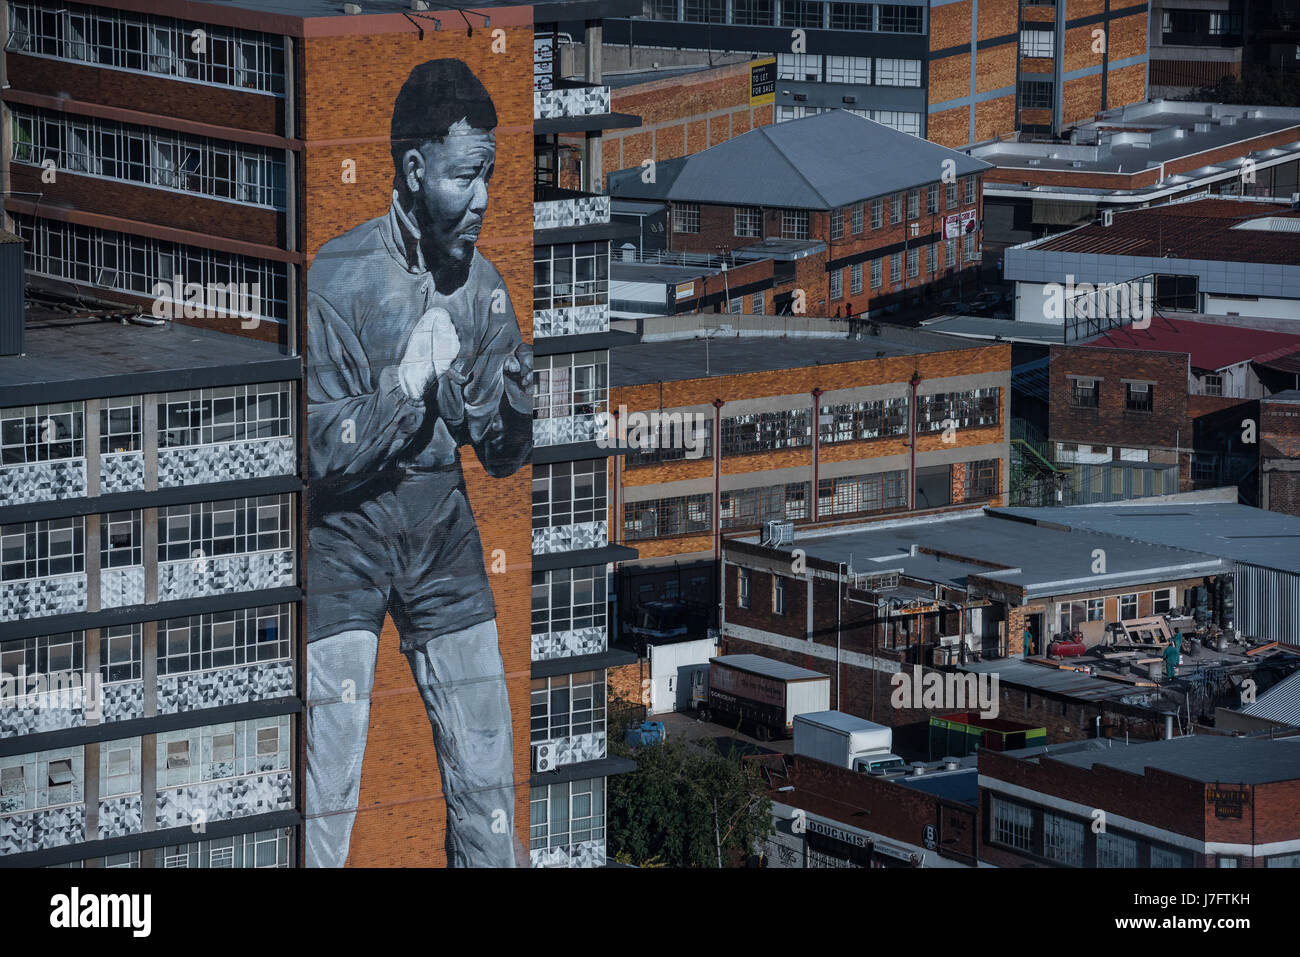 A portrait of former South African president Nelson Mandela as part of an inner city renewal project in Maboneng, - Stock Image